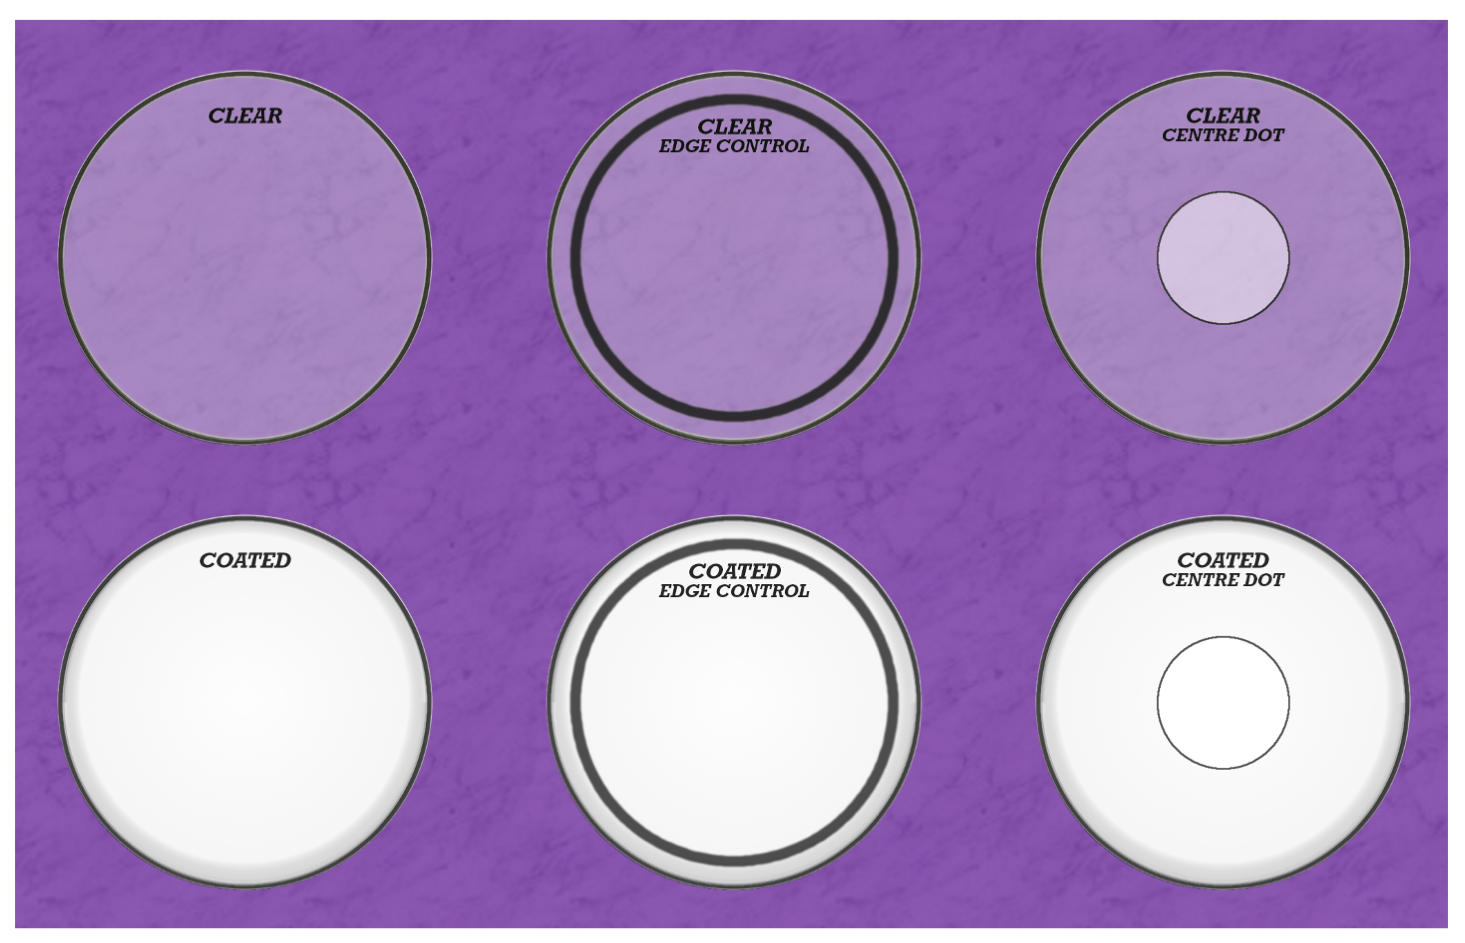 Figure 7.1. Examples of different drumhead designs and features